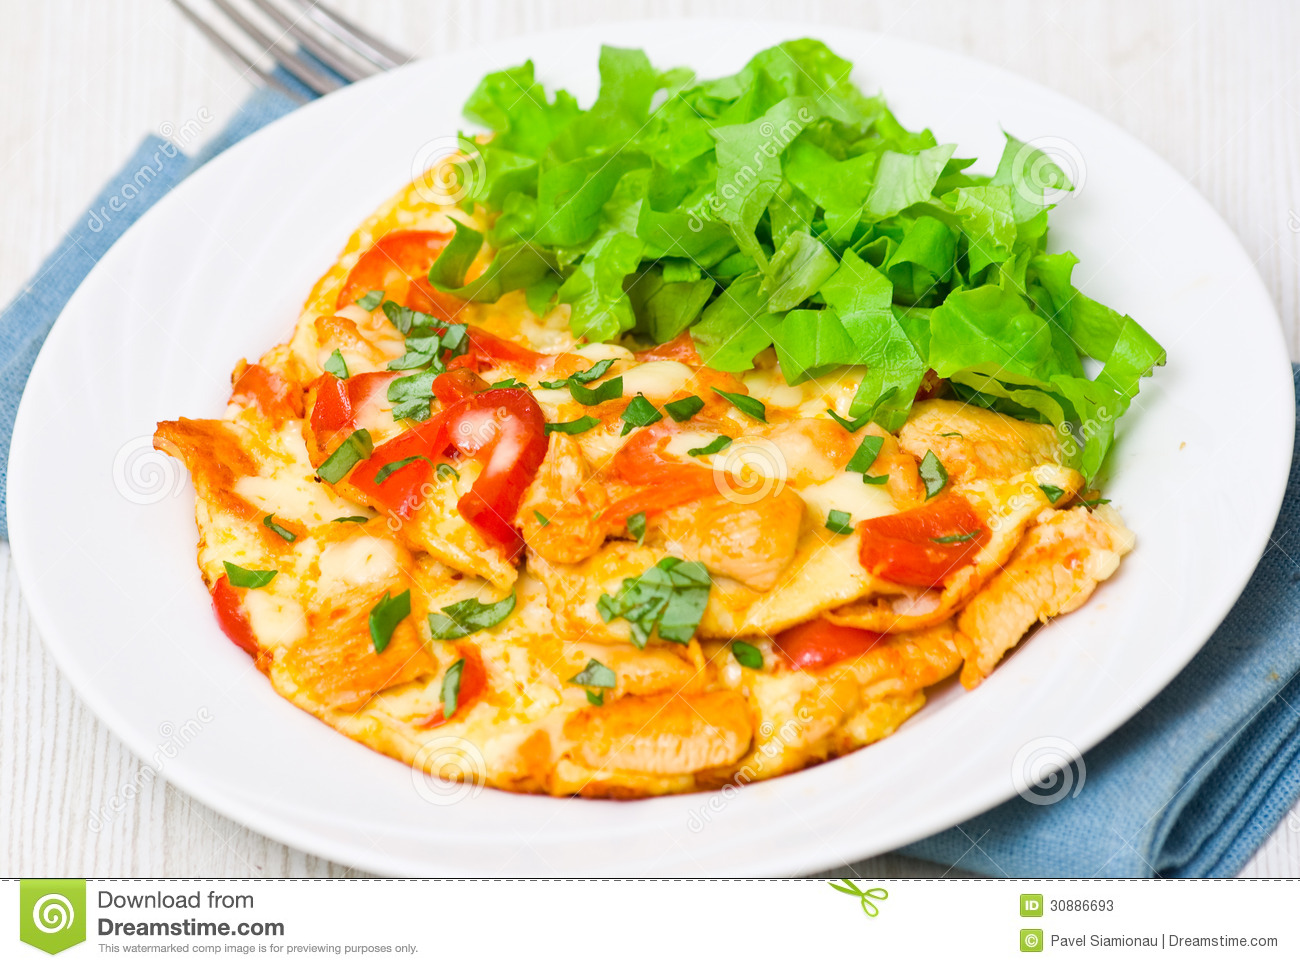 Omelette with slices of chicken breast and vegetables